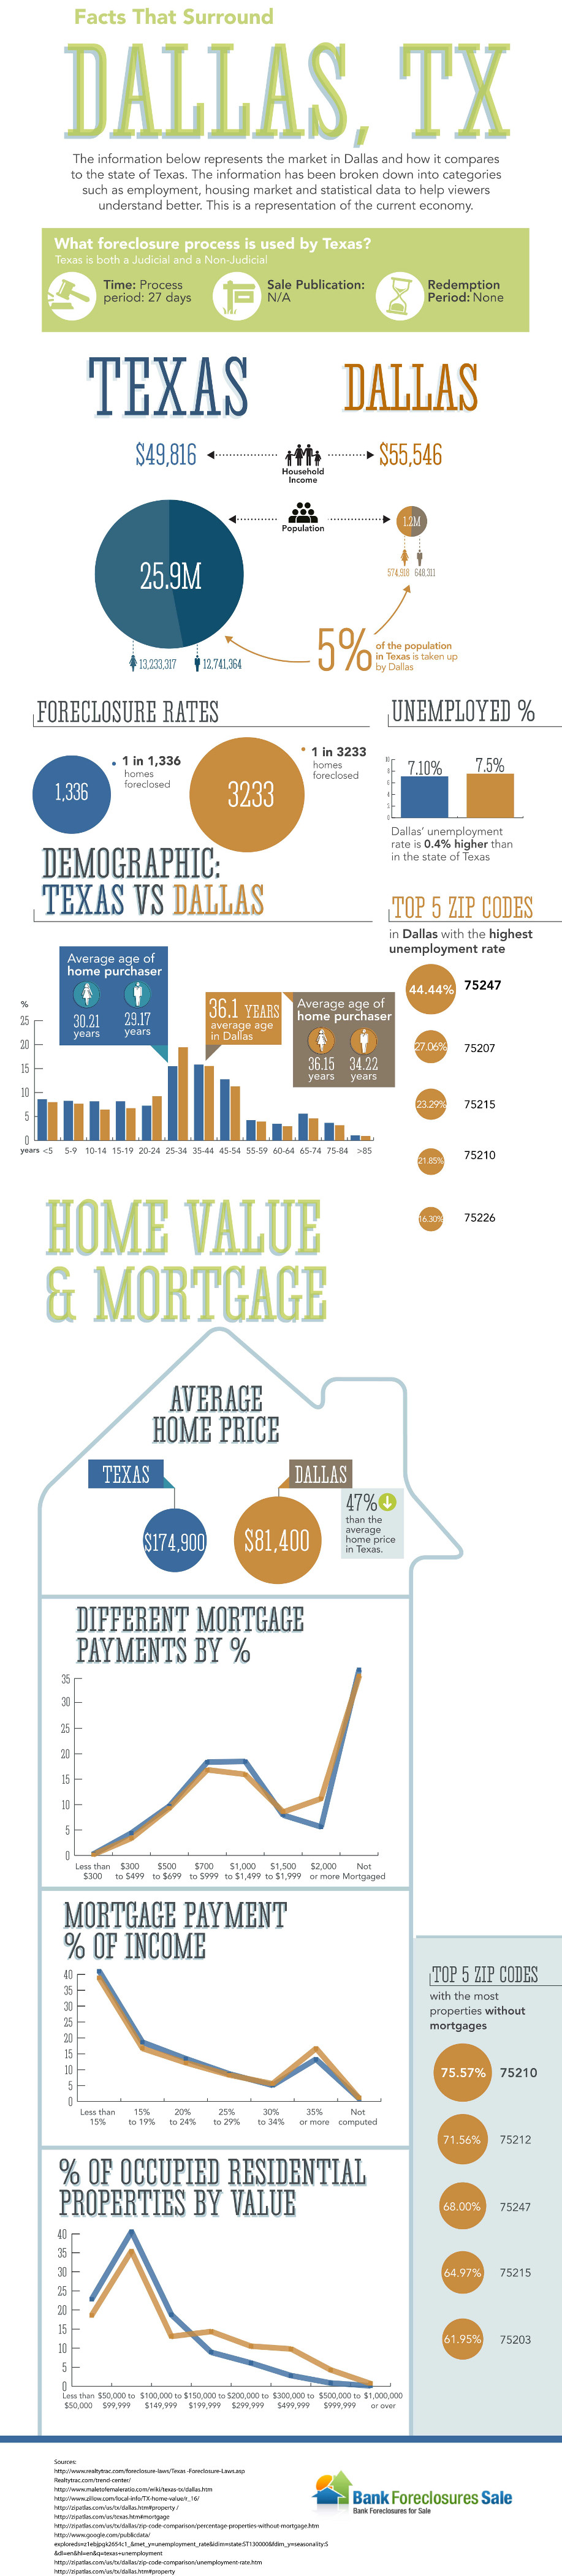 dallas tx real estate infographic